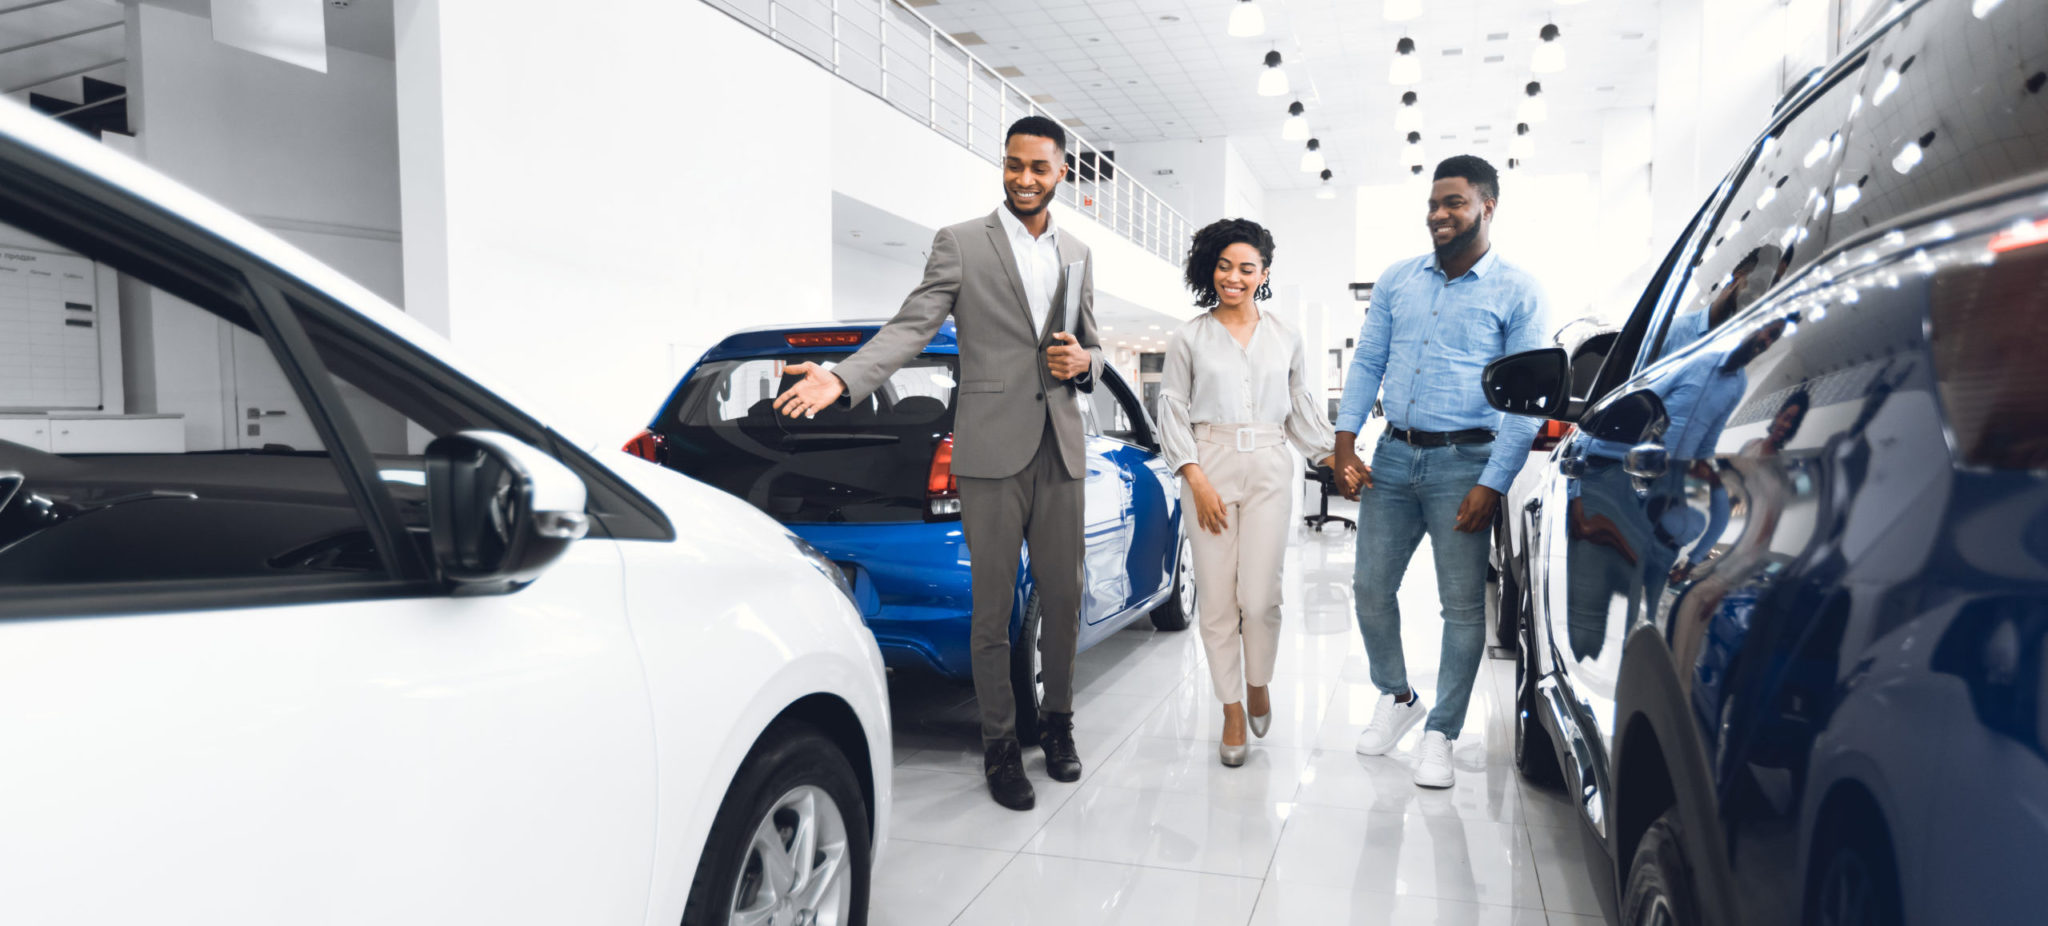 Car Selling Business Manager Showing Luxury Automobile To Man And Spouse